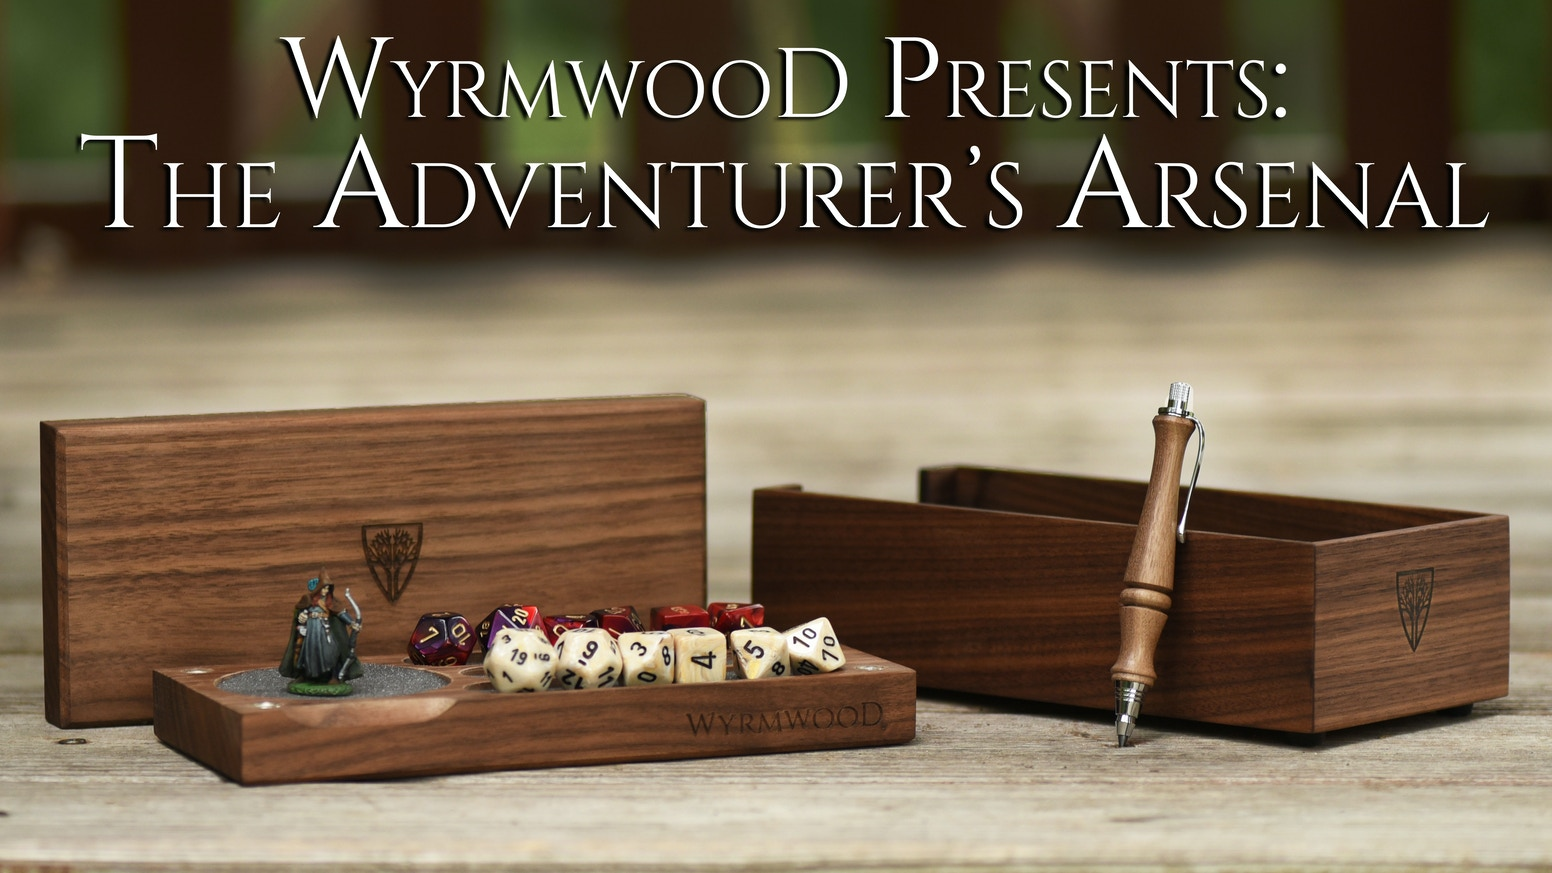 Storage for dice and miniatures, a rolling tray and a pencil make the Wyrmwood Adventurer's Arsenal the perfect tabletop RPG companion.